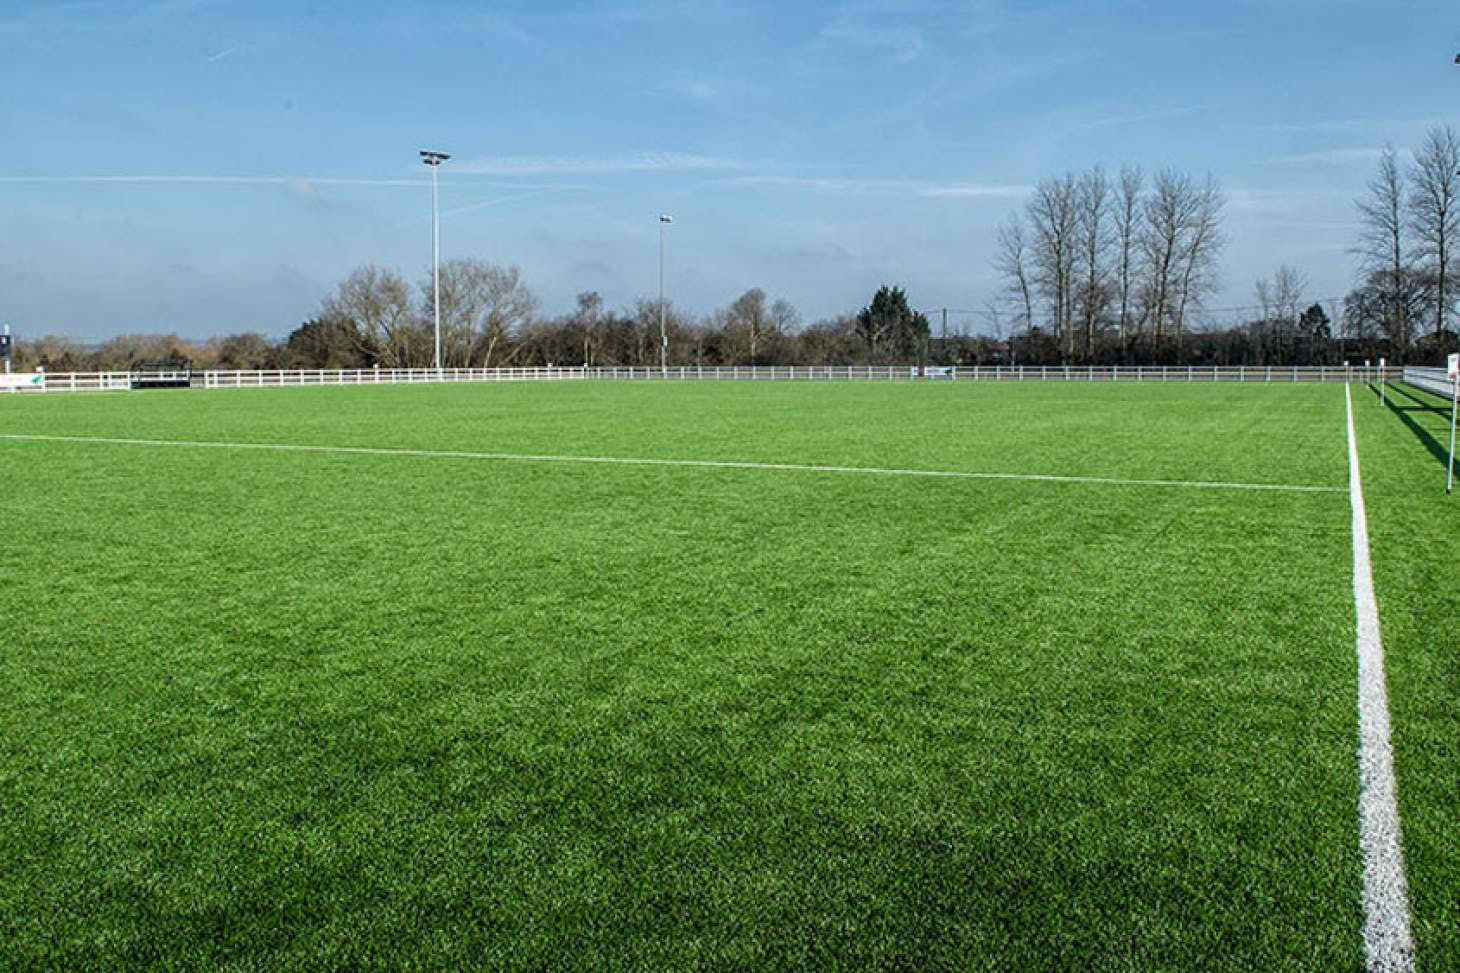 PlayFootball Wanstead 5 a side | 3G Astroturf football pitch